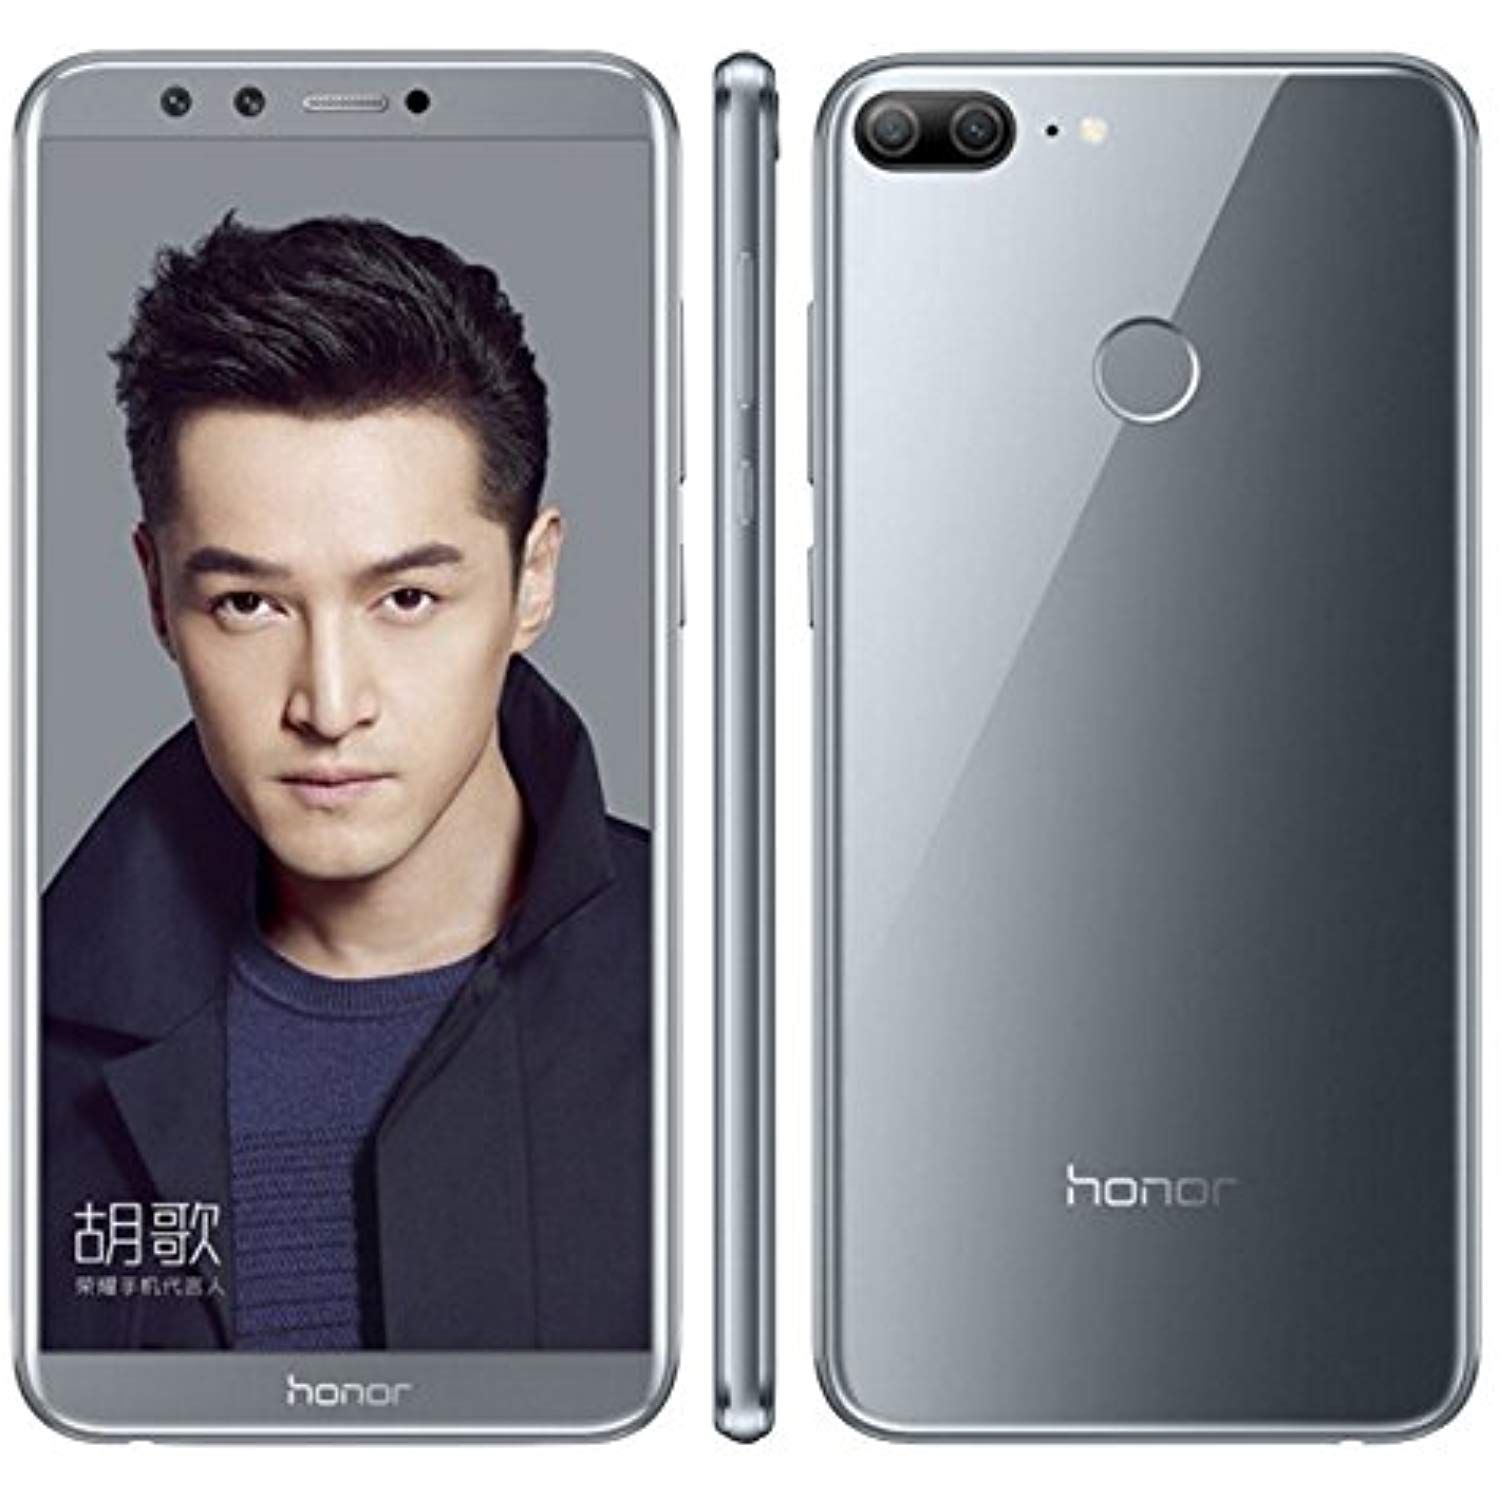 Huawei Honor 9 Lite 32gb 3gb Ram With Dual Front And Rear Cameras 3000mah Unlocked Smartphone Grey Visit The Image Link Mor Huawei Unlock Smartphone